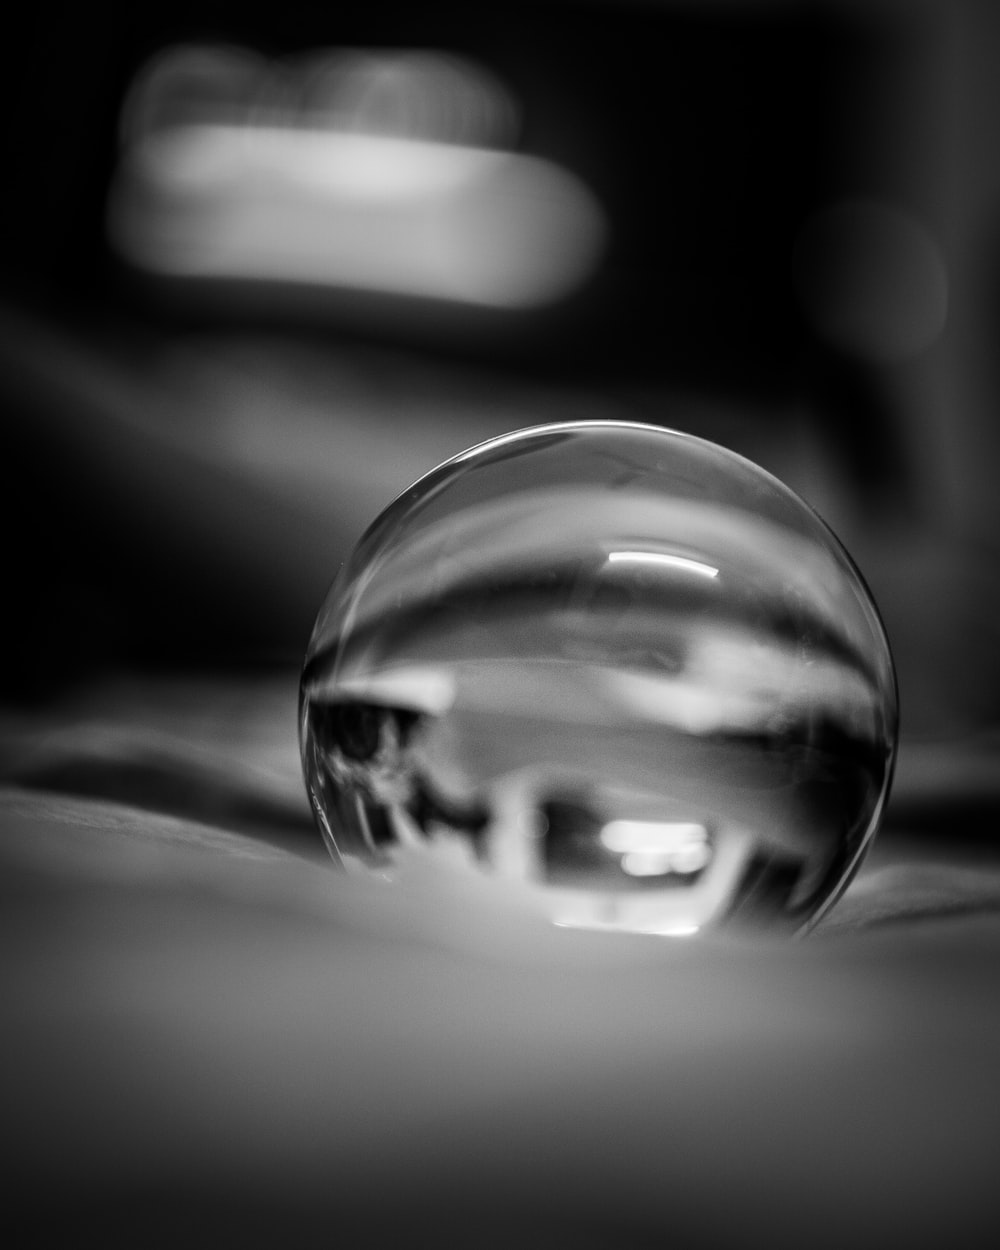 grayscale photo of water drop